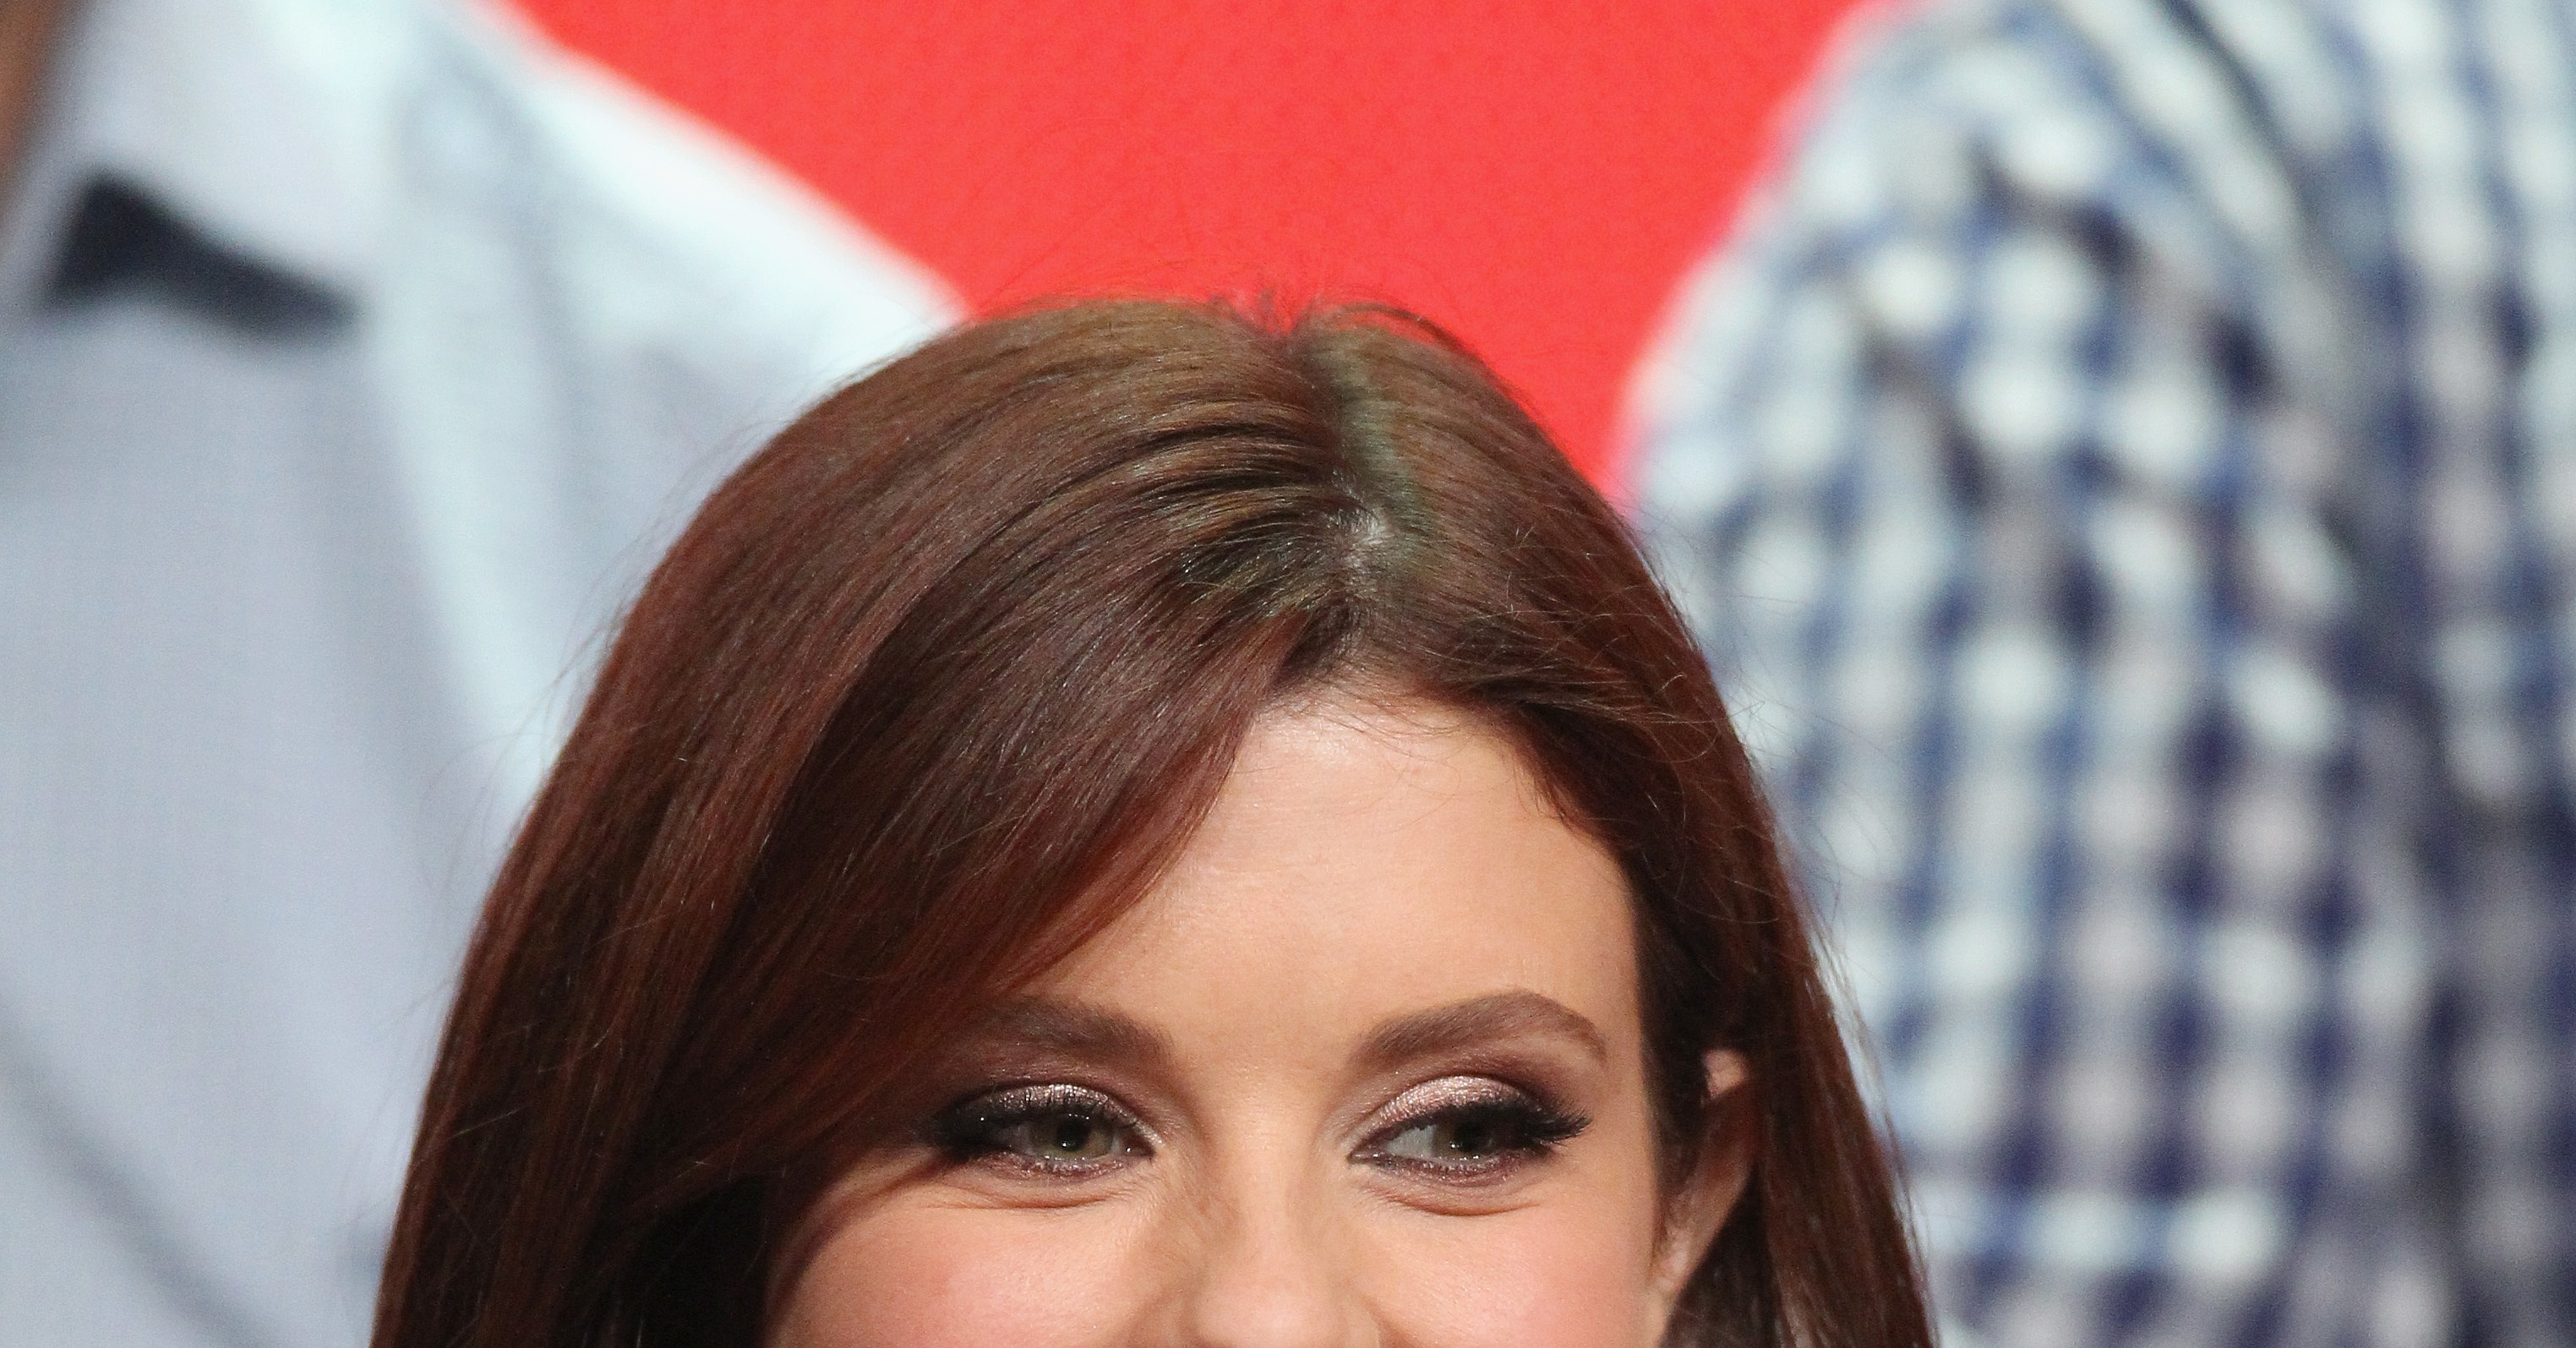 Joanna-Garcia-plays-former-flame-who-family-owns-animal.jpg